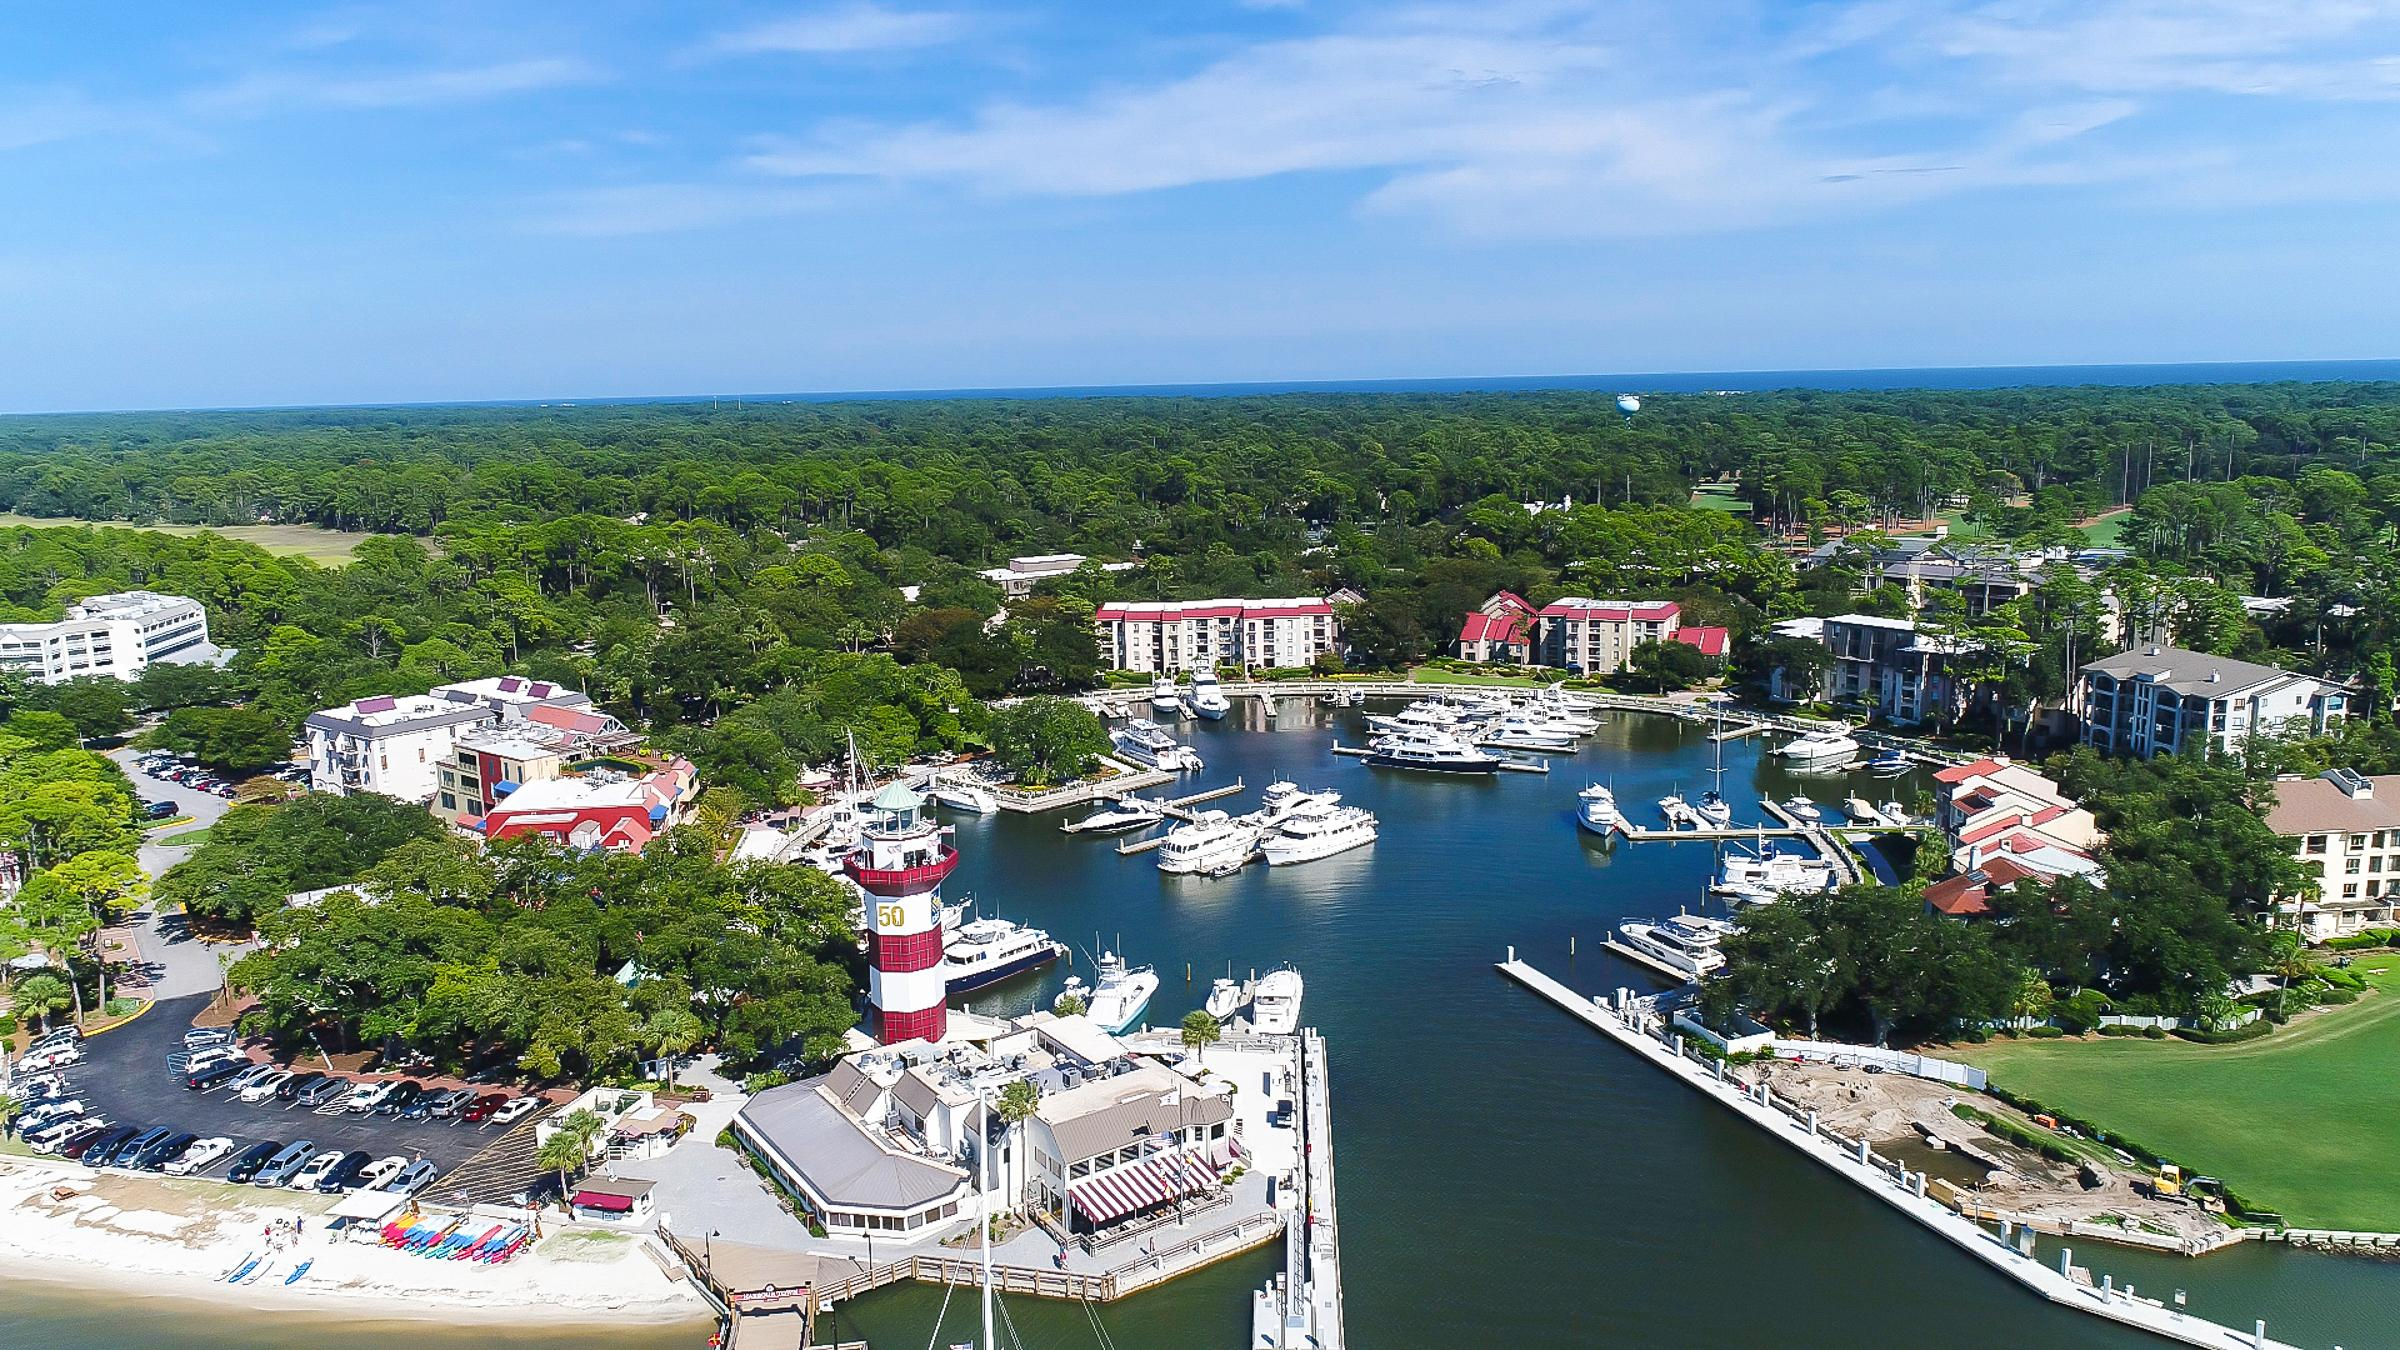 This fully updated, professionally decorated villa is just steps from Hilton Head's iconic lighthouse and marina.